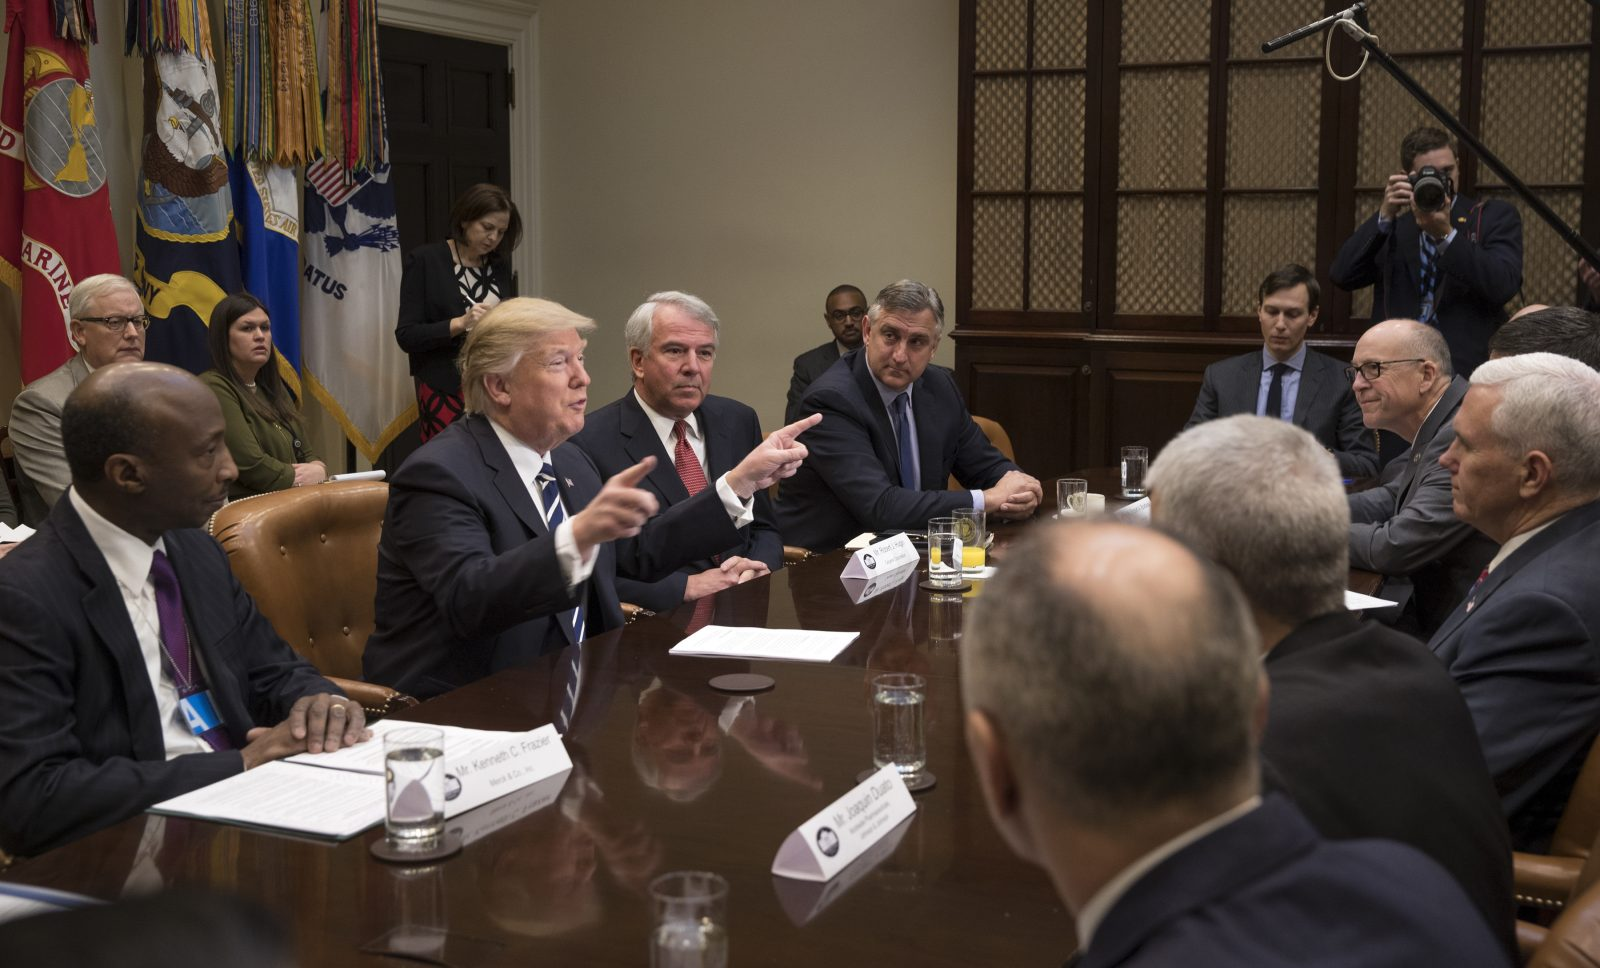 President Donald Trump during a meeting with pharmaceutical company executives in the Roosevelt Room of the White House in Washington, Jan. 31, 2017. From left: Kenneth Frazier; the chief executive of Merck & Co., Trump, and Robert Hugin; chief executive of Celgene. (Stephen Crowley/The New York Times)